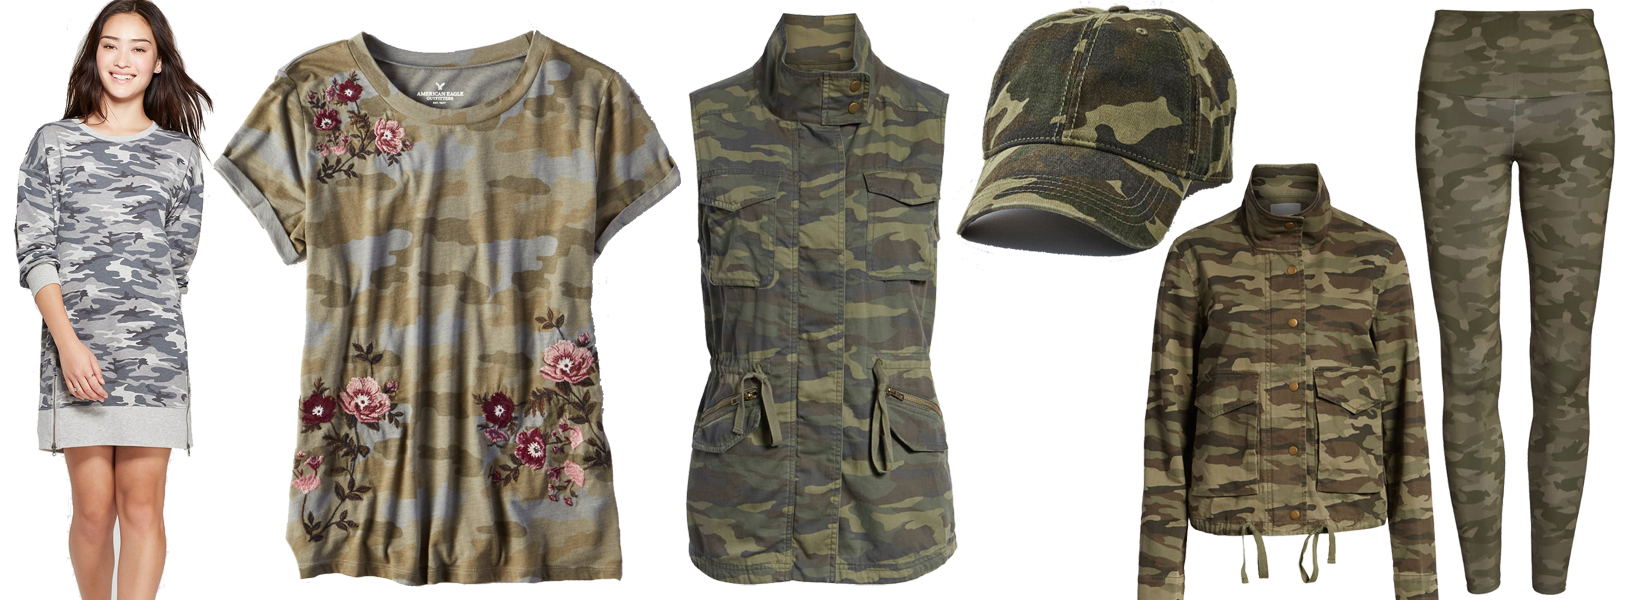 The Best Camo Finds for Fall